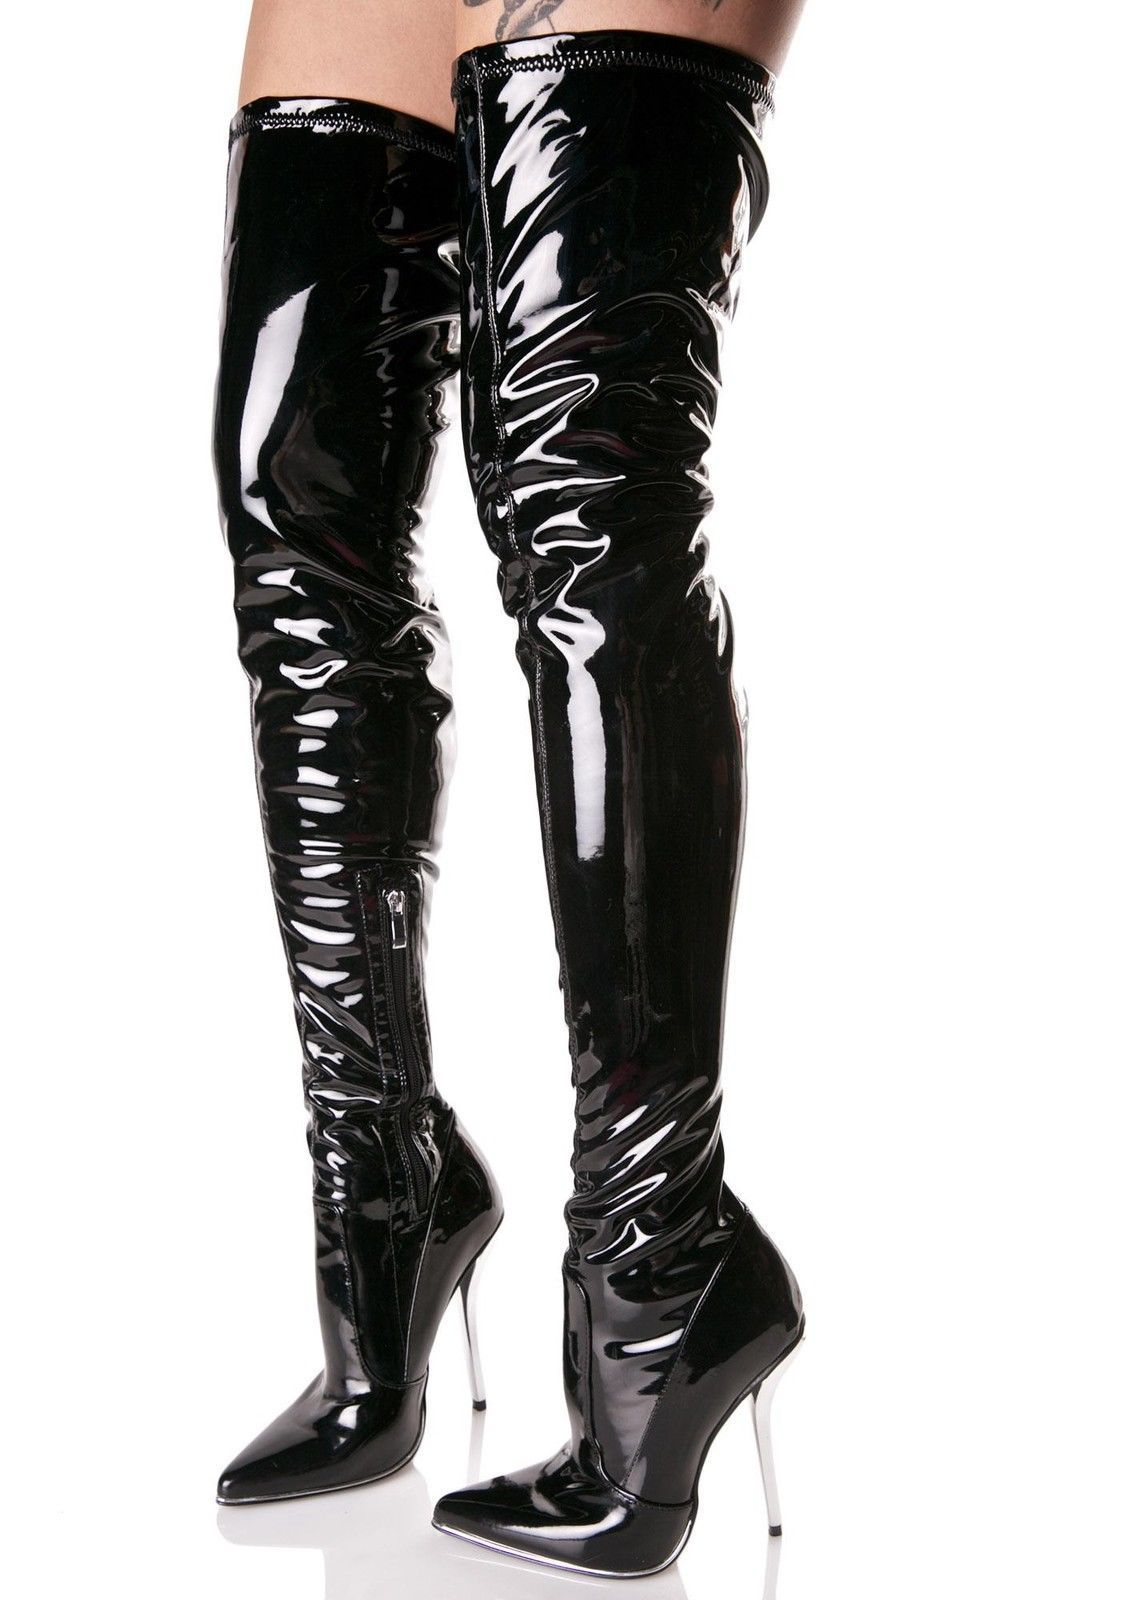 3c55db132 Luichiny More Or Less Manic Thigh-High Boots Glossy Patent Pointed Toe  Stilleto